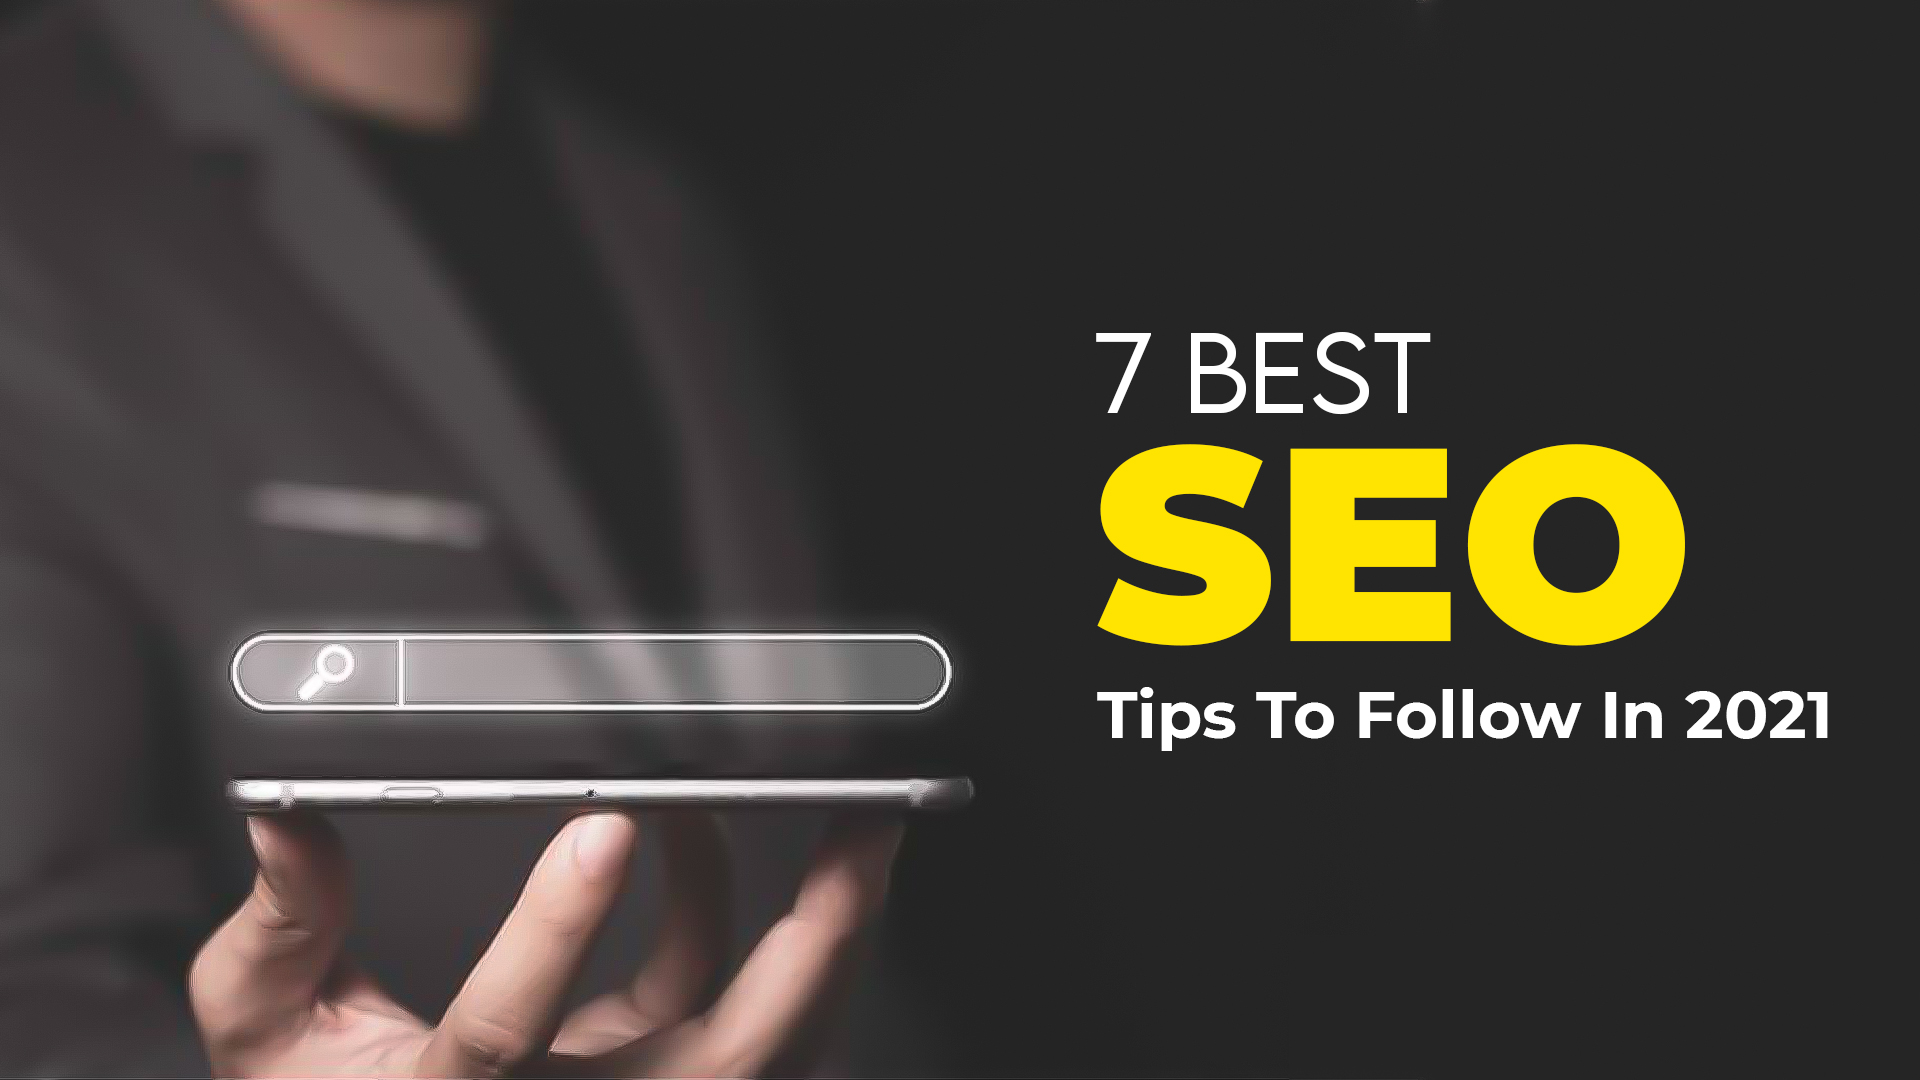 7 Best SEO Tips To Follow In 2021